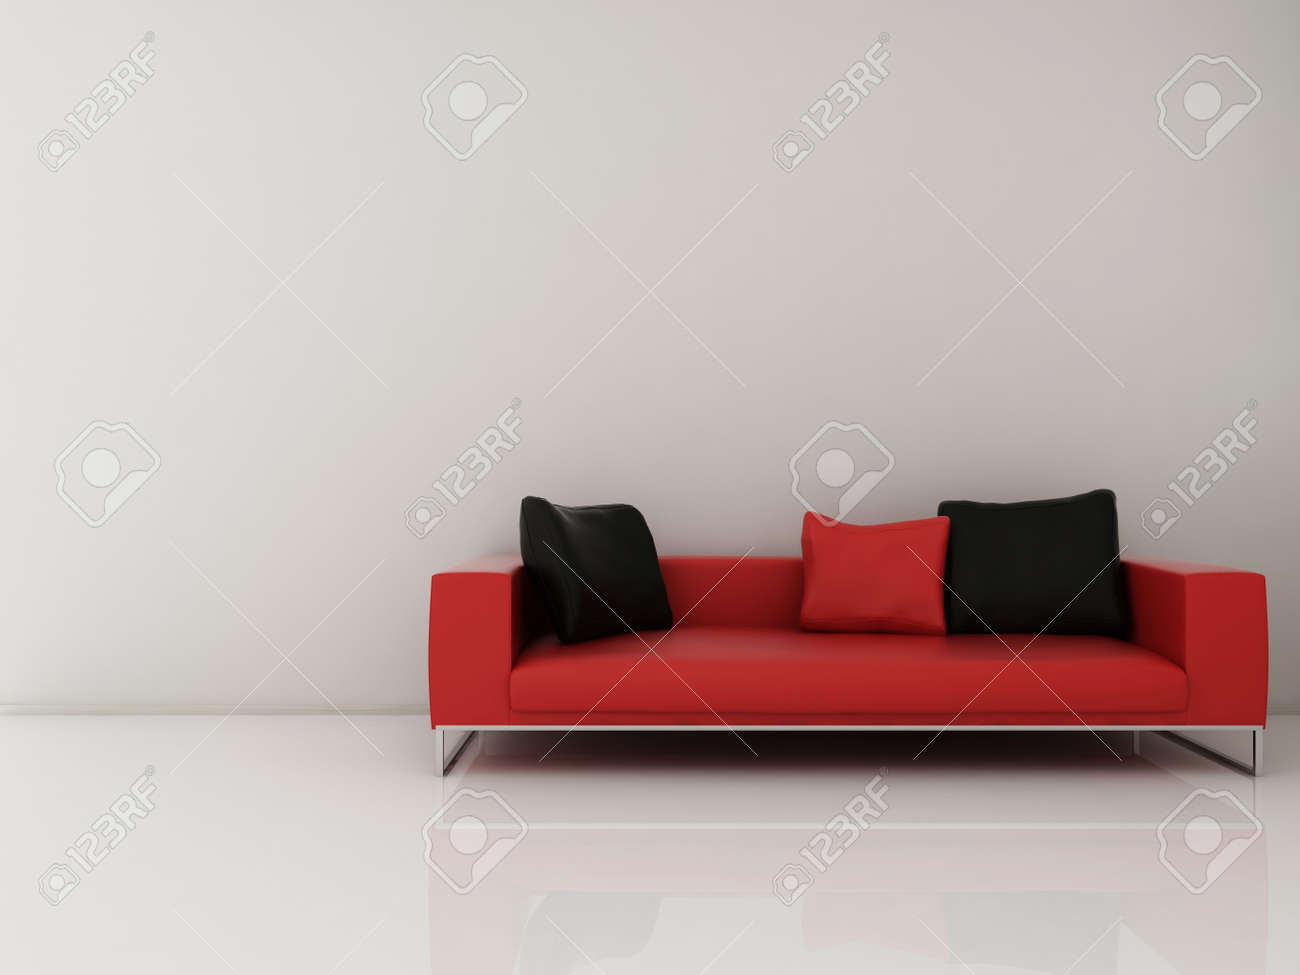 f2c9856d87e Red Leather Couch to face a blank white wall Stock Photo - 5573582